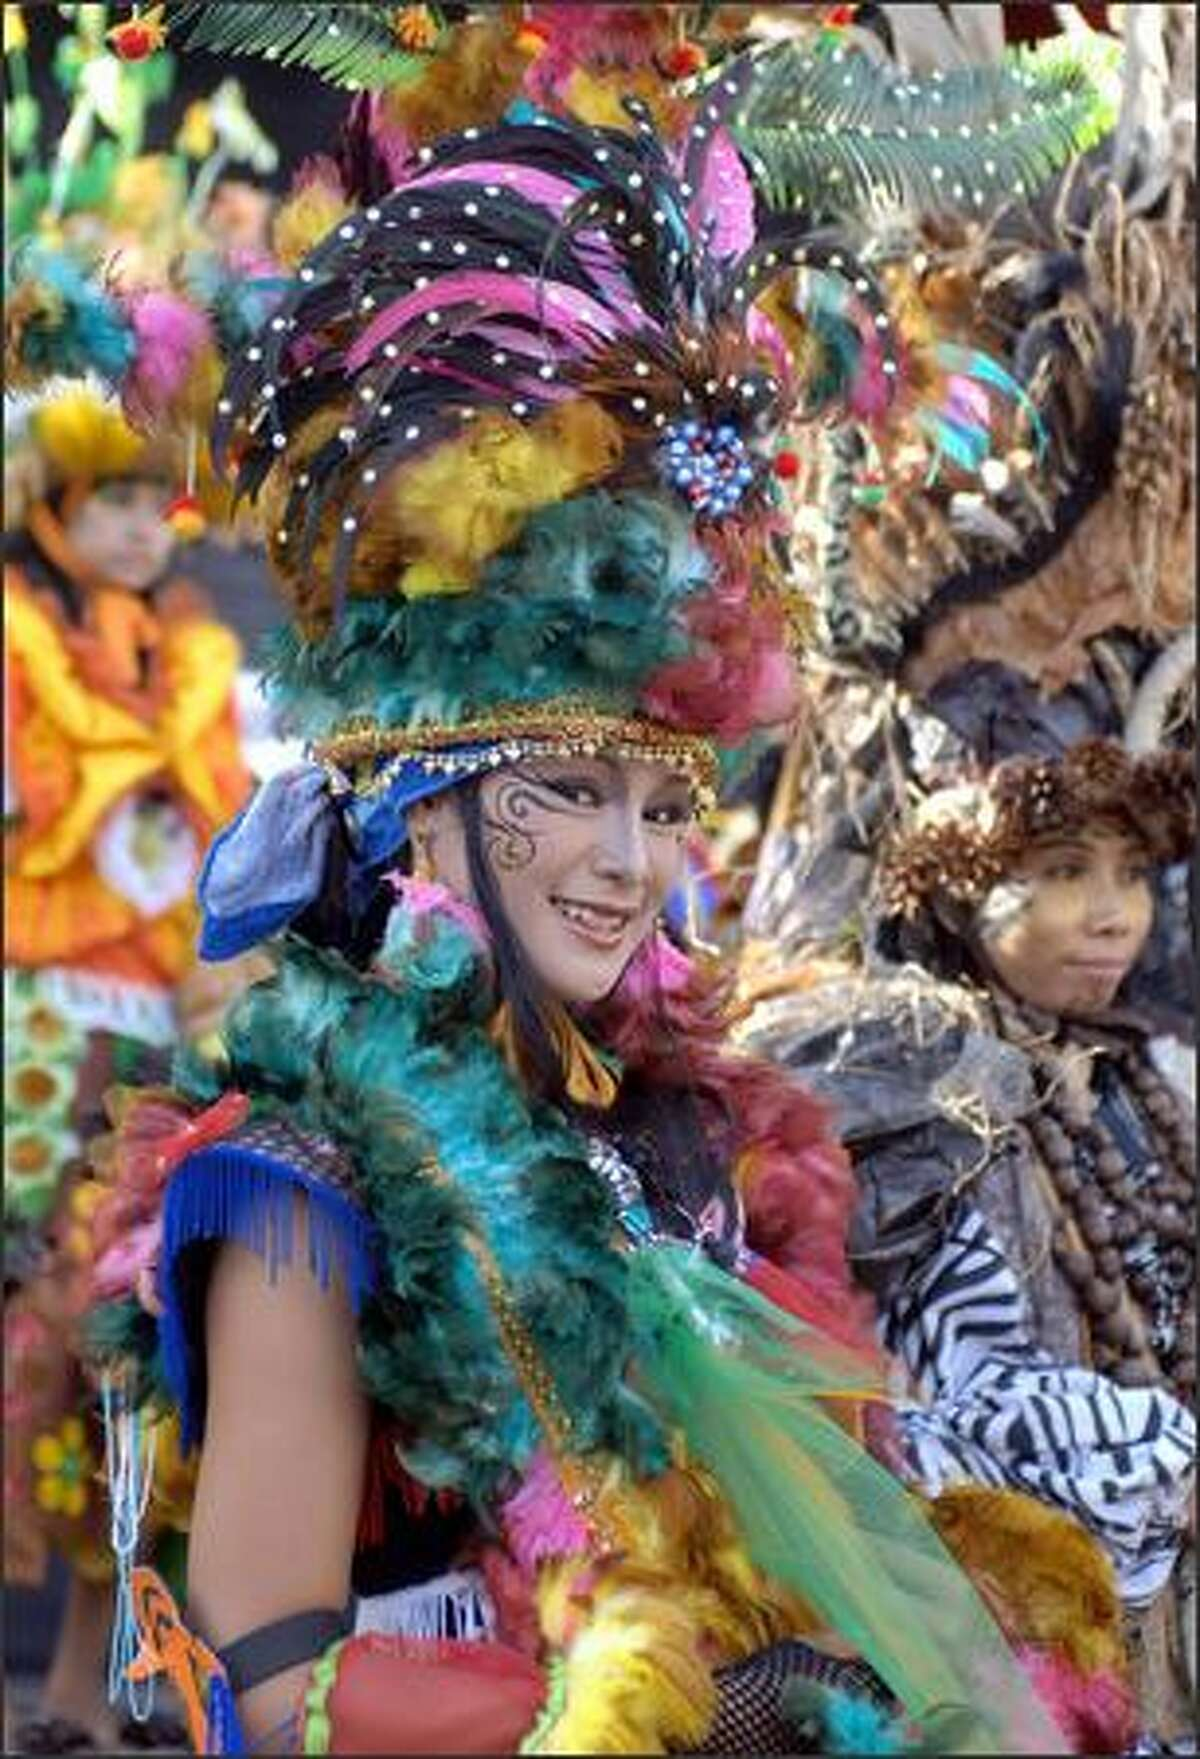 A model performs in a Borneo-style outfit during the Bali Fashion Festival in Kuta area of Denpasar, on Bali island, 25 November 2007. Bali Fashion Week is held 22-25 November as part of the local government's program to attract tourists.